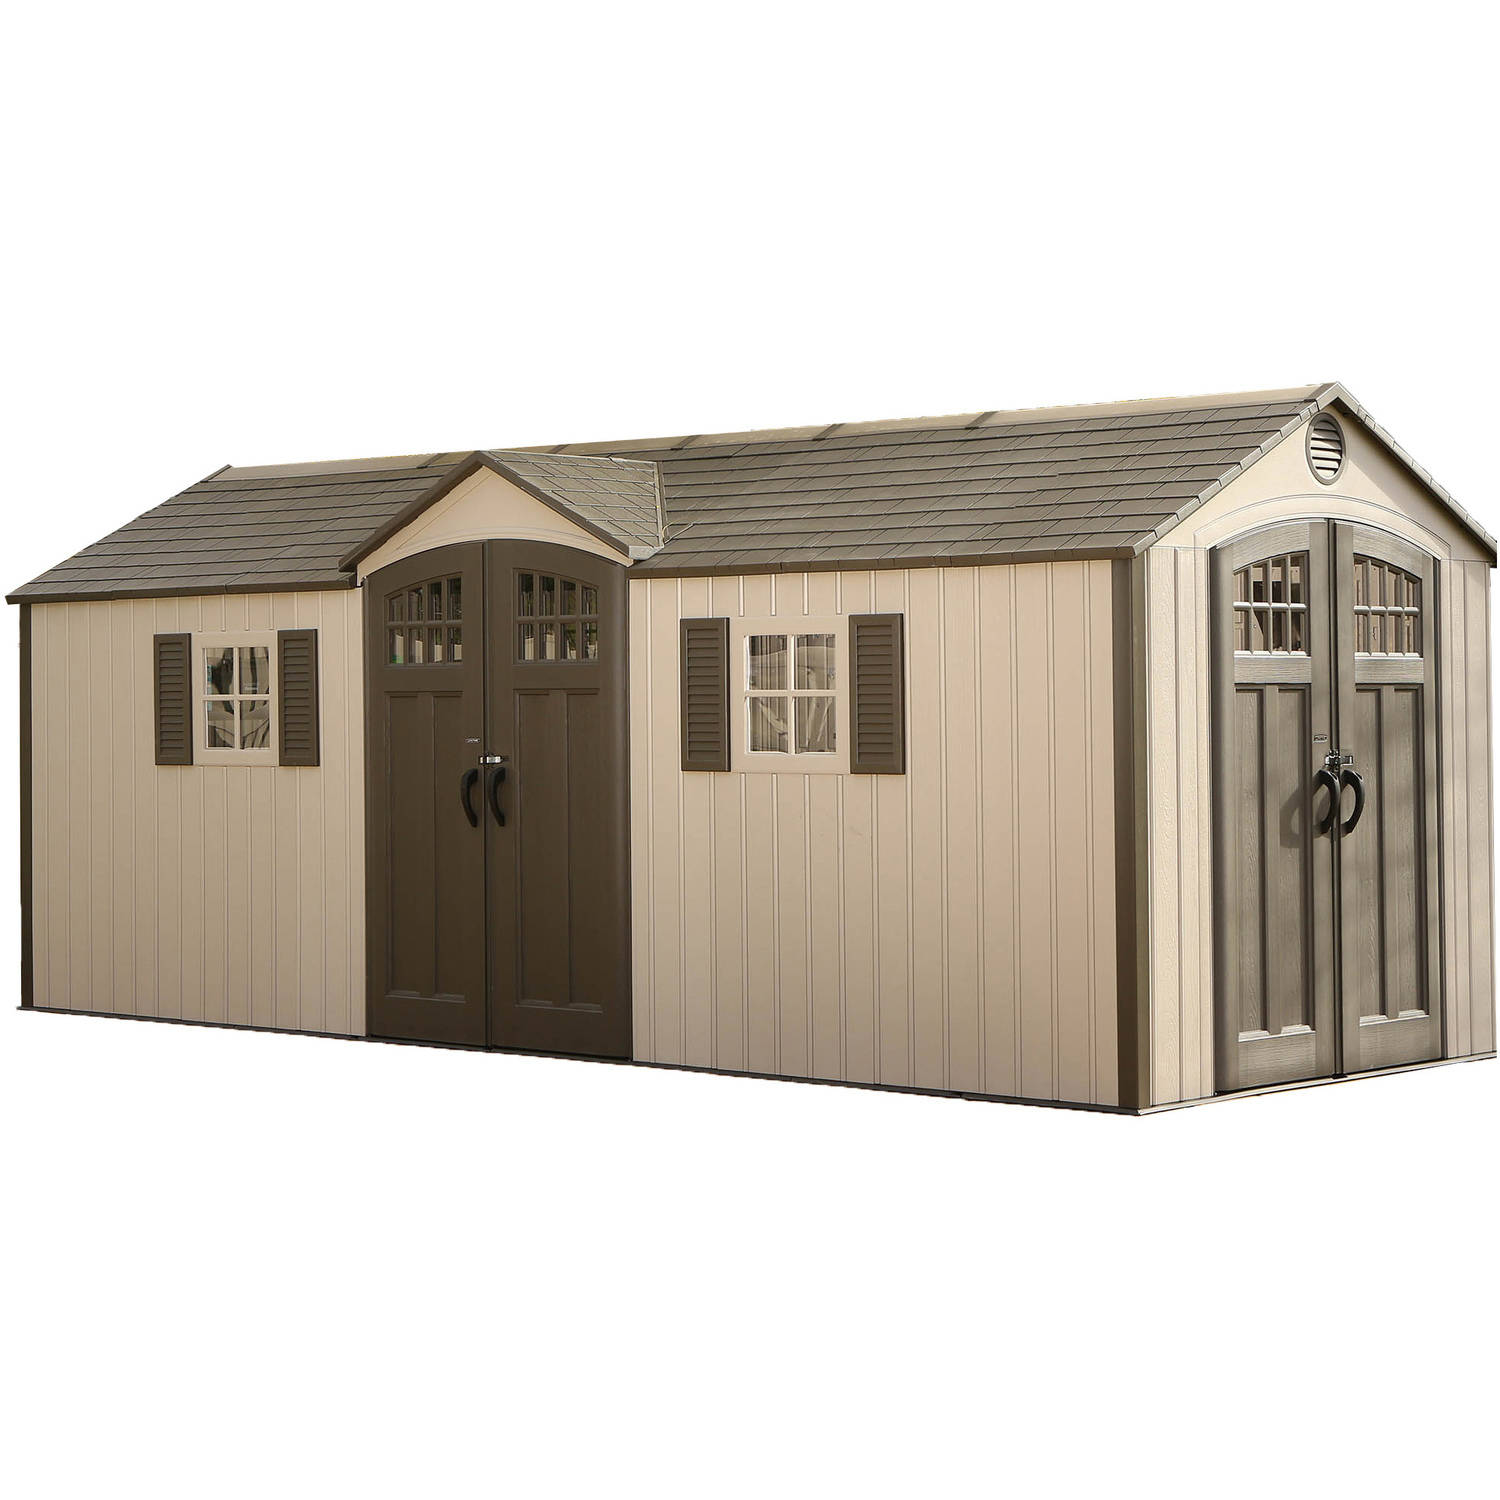 Outdoor Storage Shed 20' x 8' - Desert Sand - Lifetime